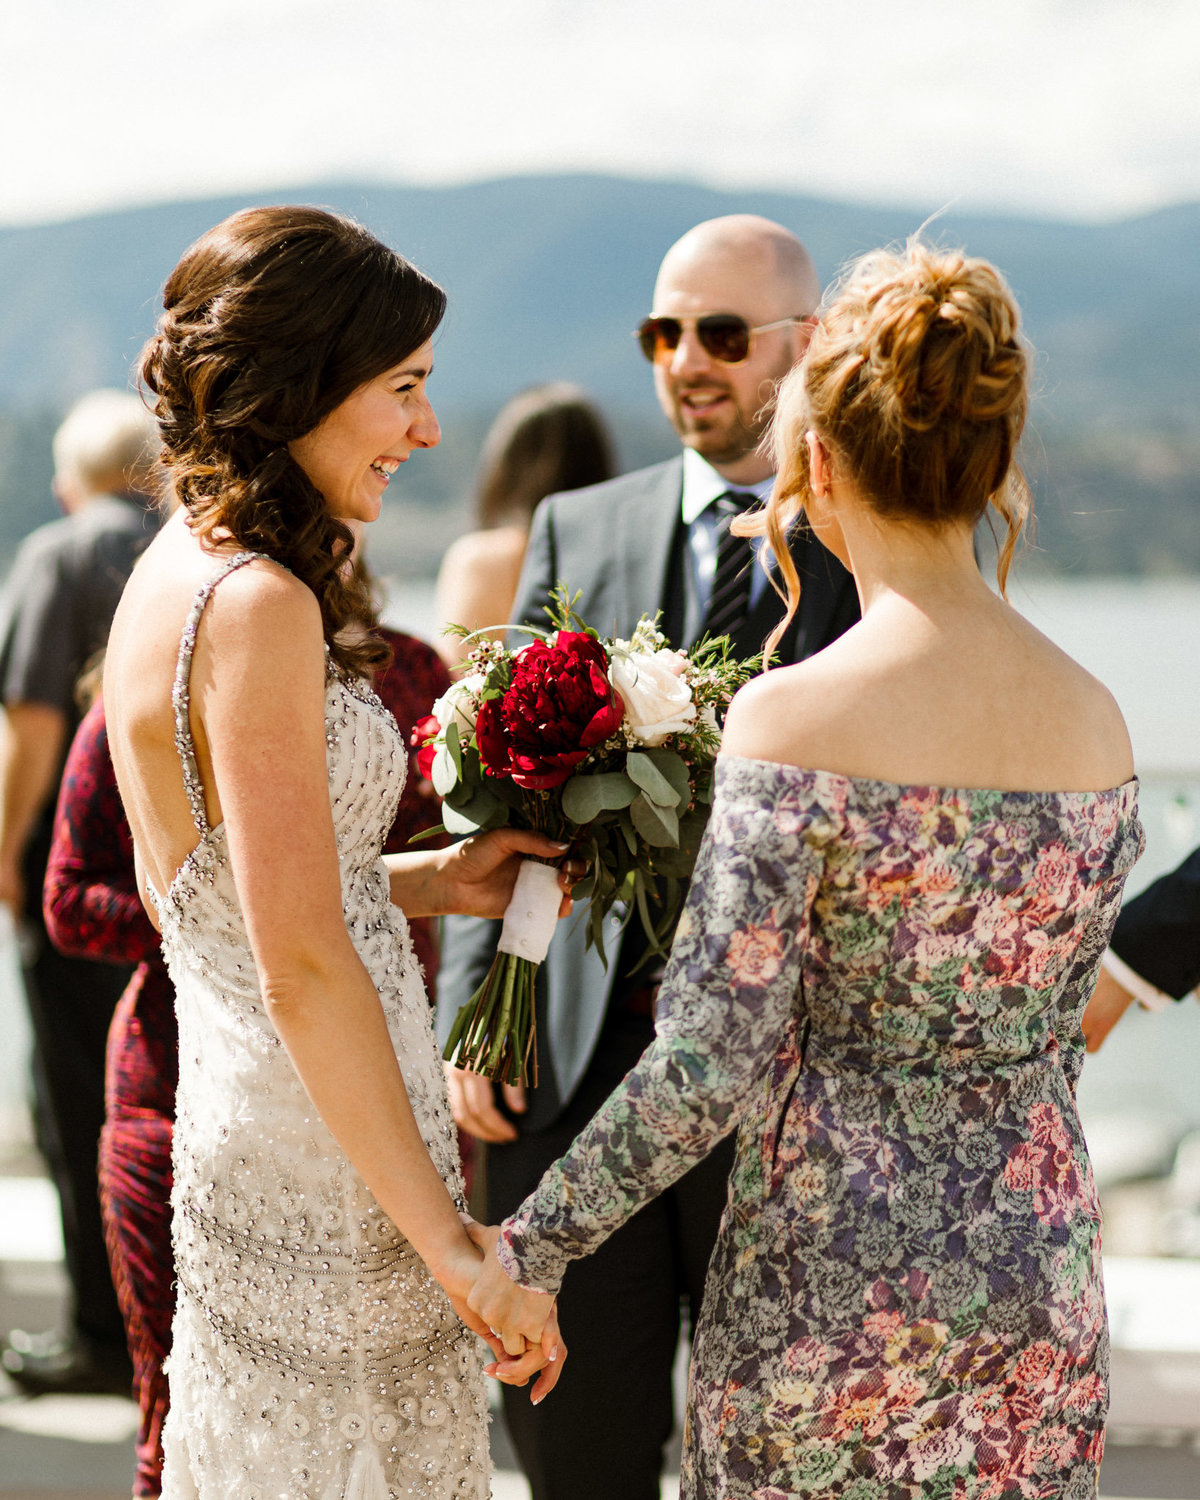 danika lee photography_kelowna vancouver okanagan summerland lake country wedding and elopement photographer candid film documentary colourful candid romantic dark and moody-134